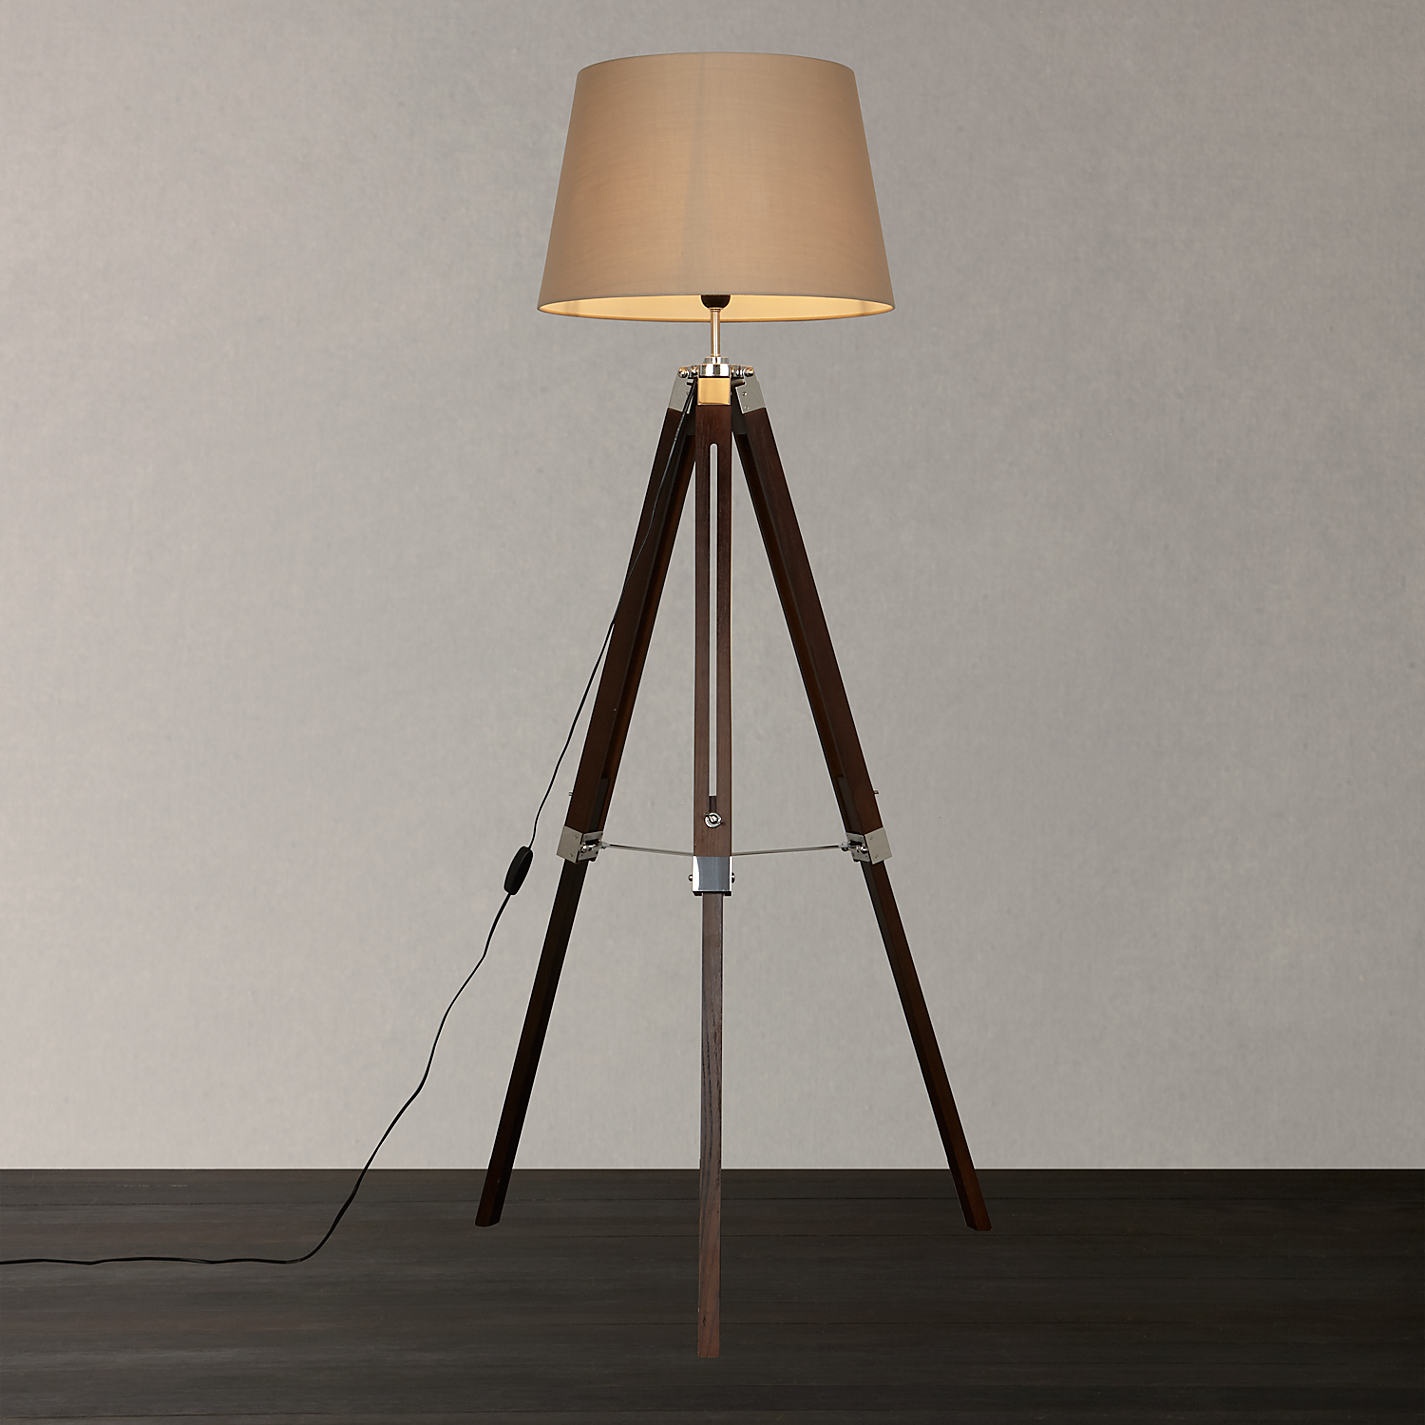 Buy john lewis jacques tripod floor lamp online at for Buy floor lamp online